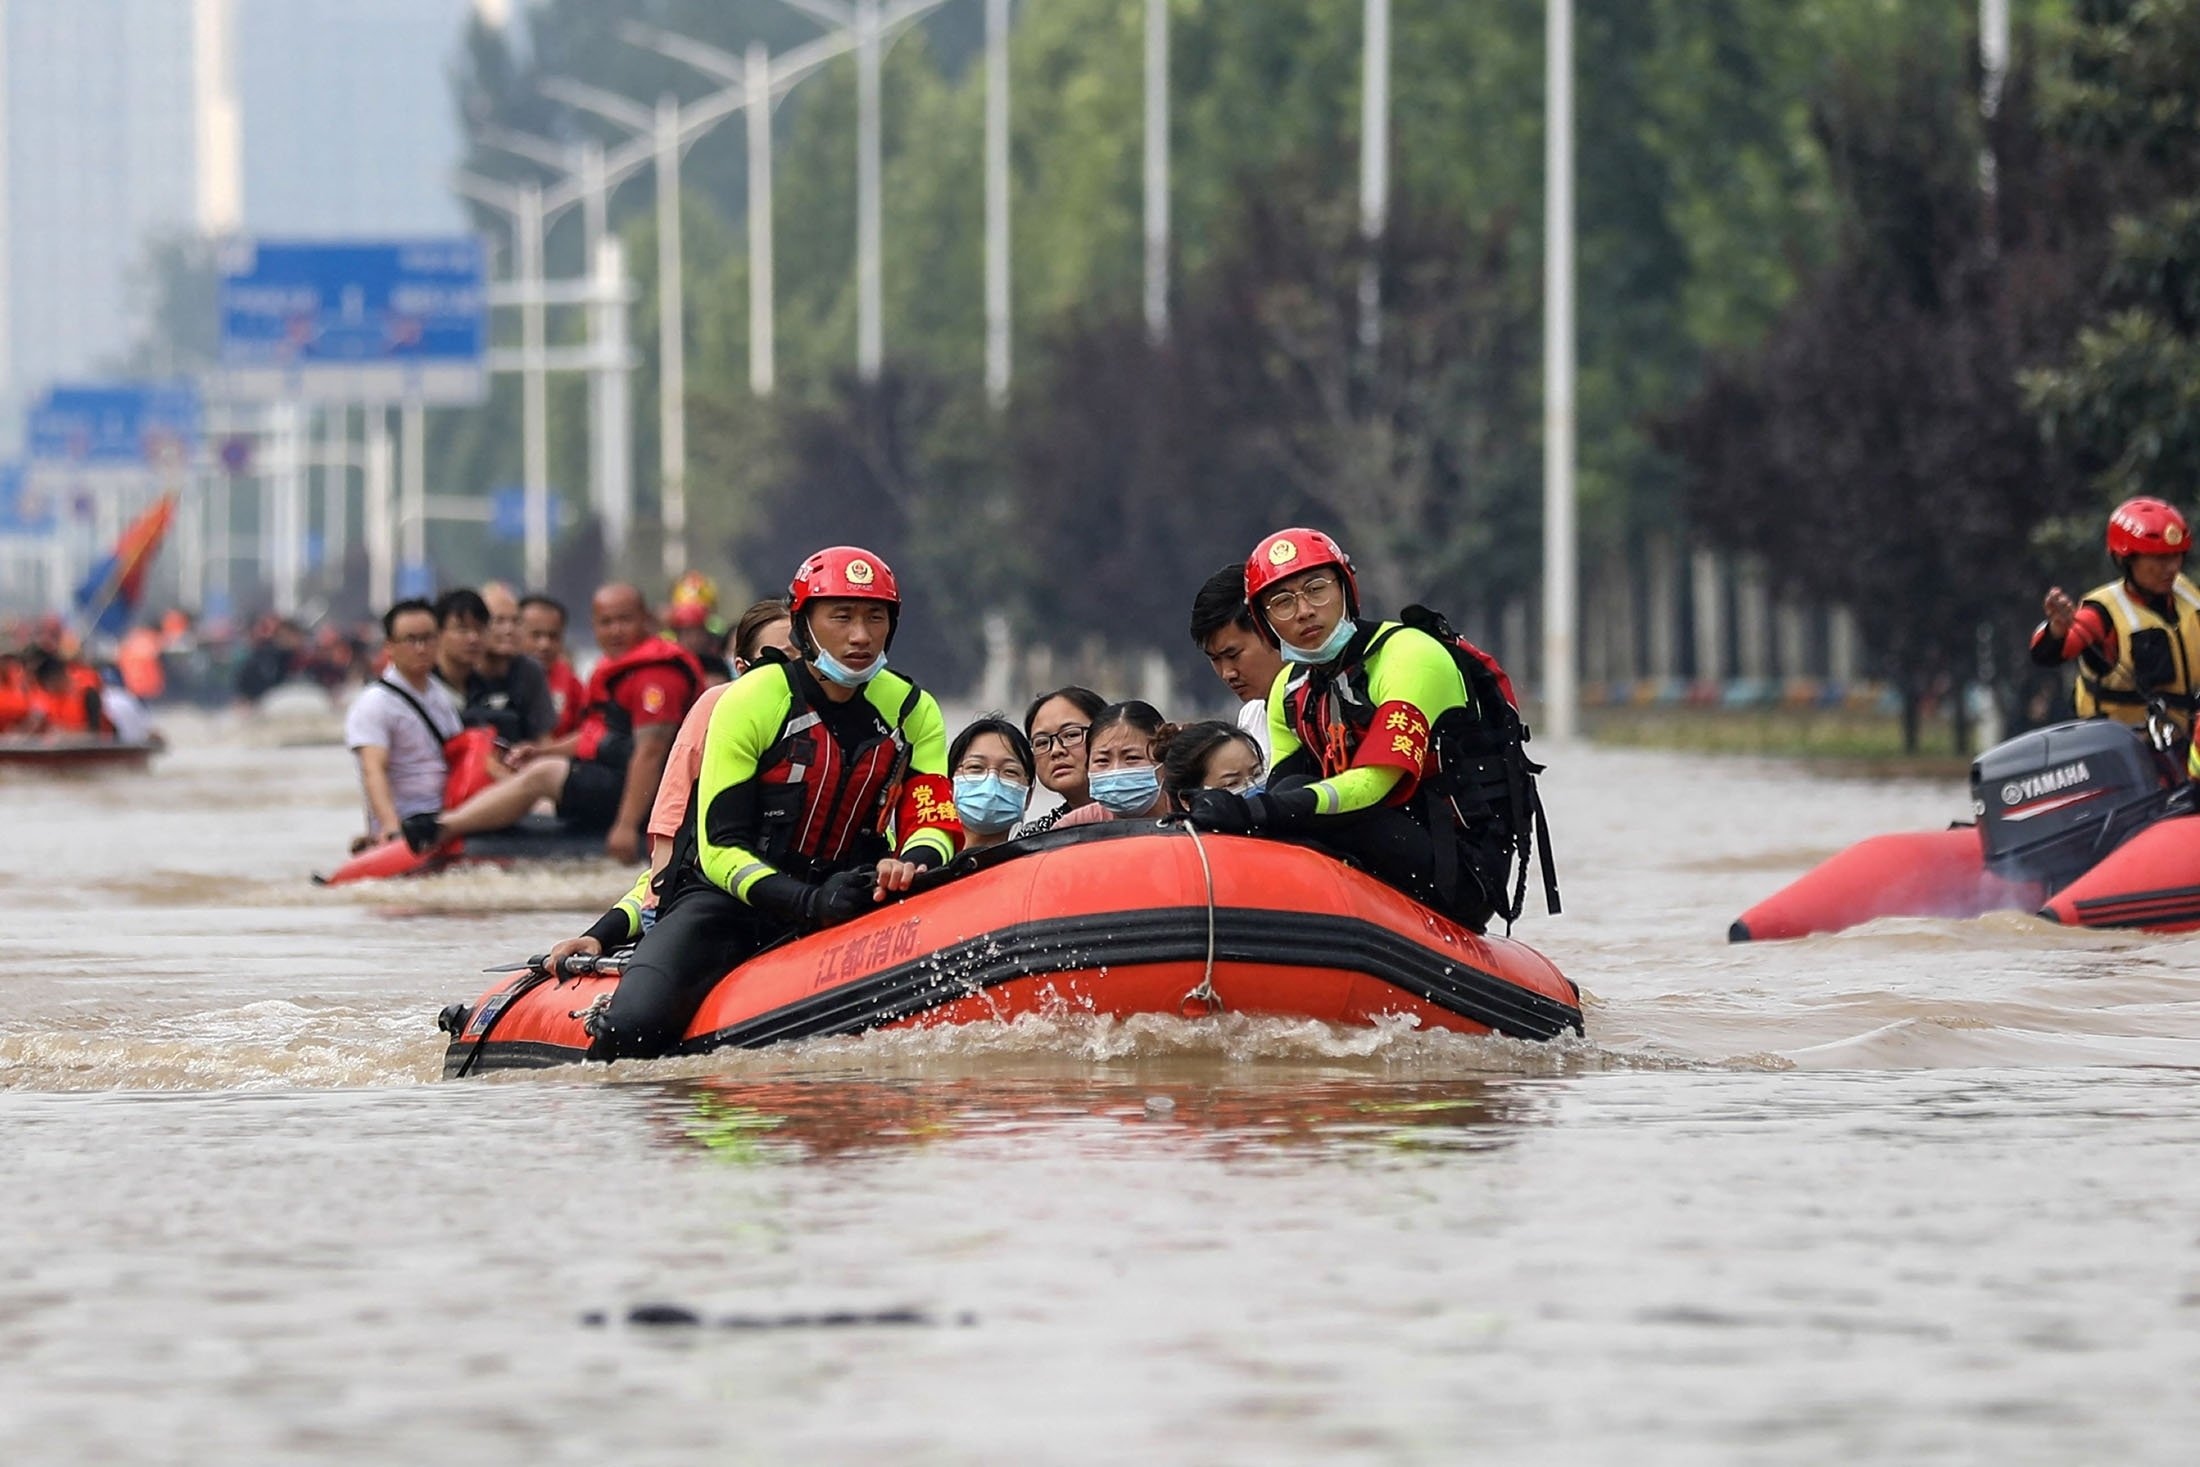 Members of the fire and rescue department from China's eastern city of Yangzhou evacuate people from a hospital following heavy rains in Zhengzhou in China's Henan province, July 22, 2021. (AFP Photo)